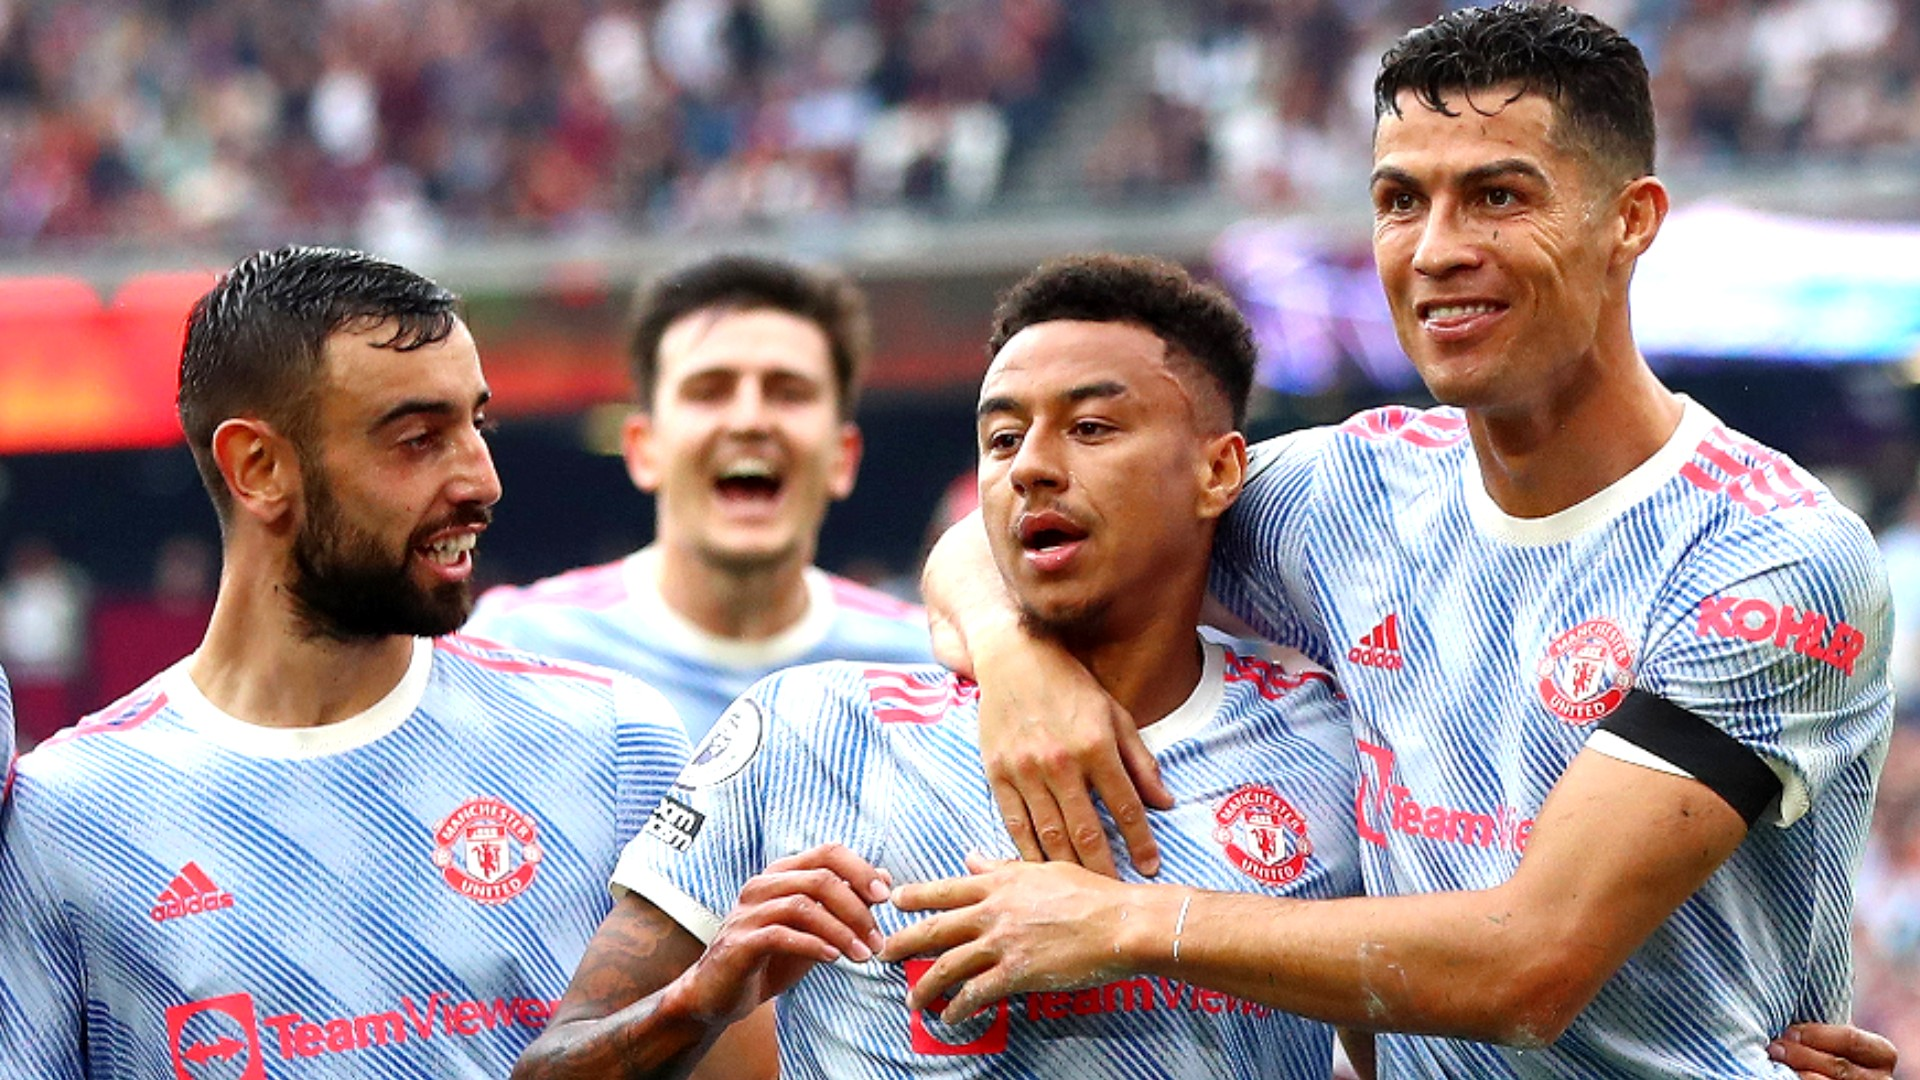 West Ham vs. Manchester United result: Cristiano Ronaldo scores, Lingard wins it and West Ham misses penalty